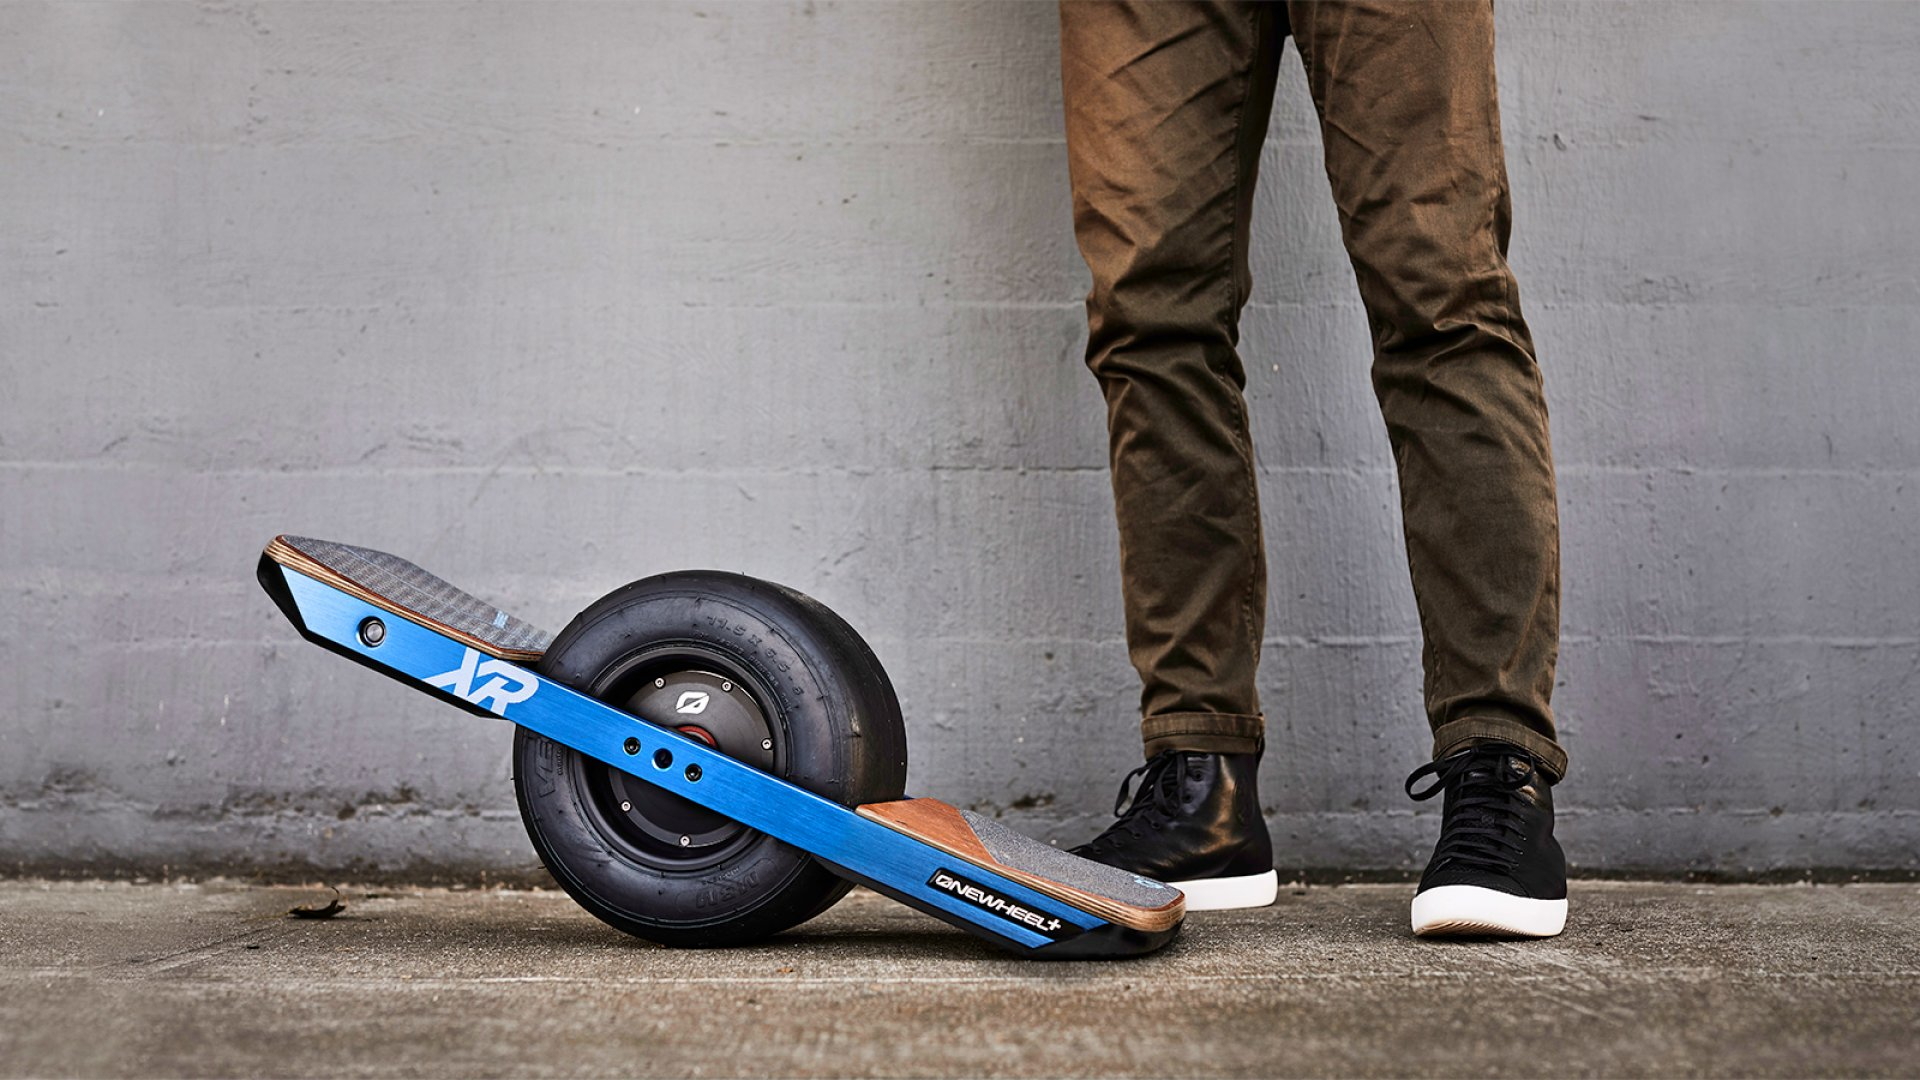 Future Motion's Onewheel+.